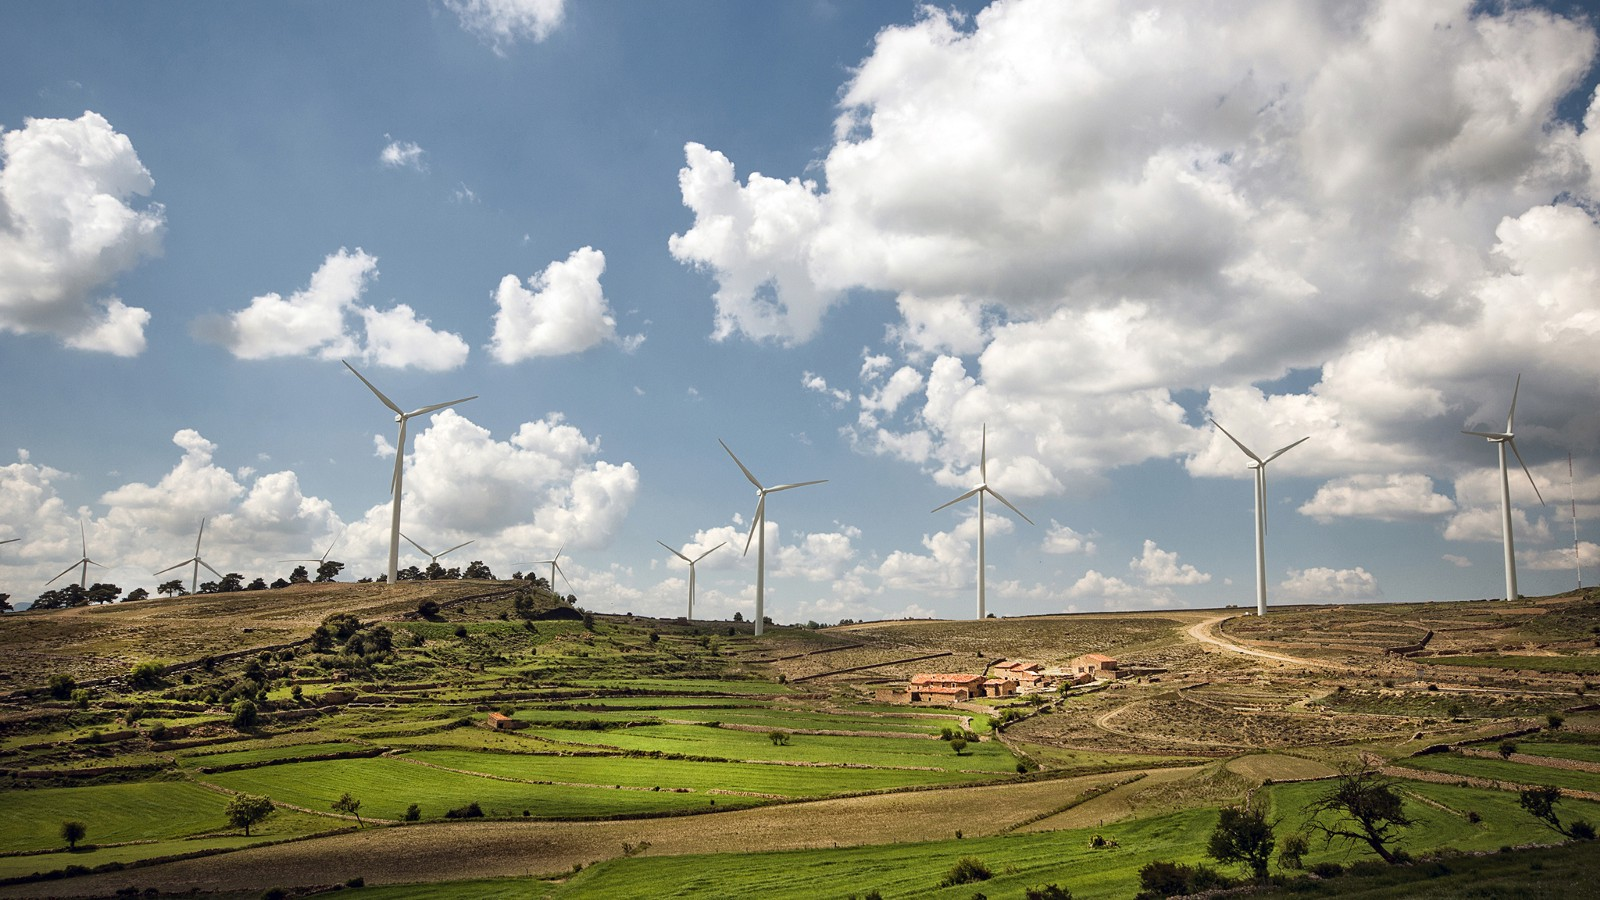 Windmills in the Castellon Province of Spain